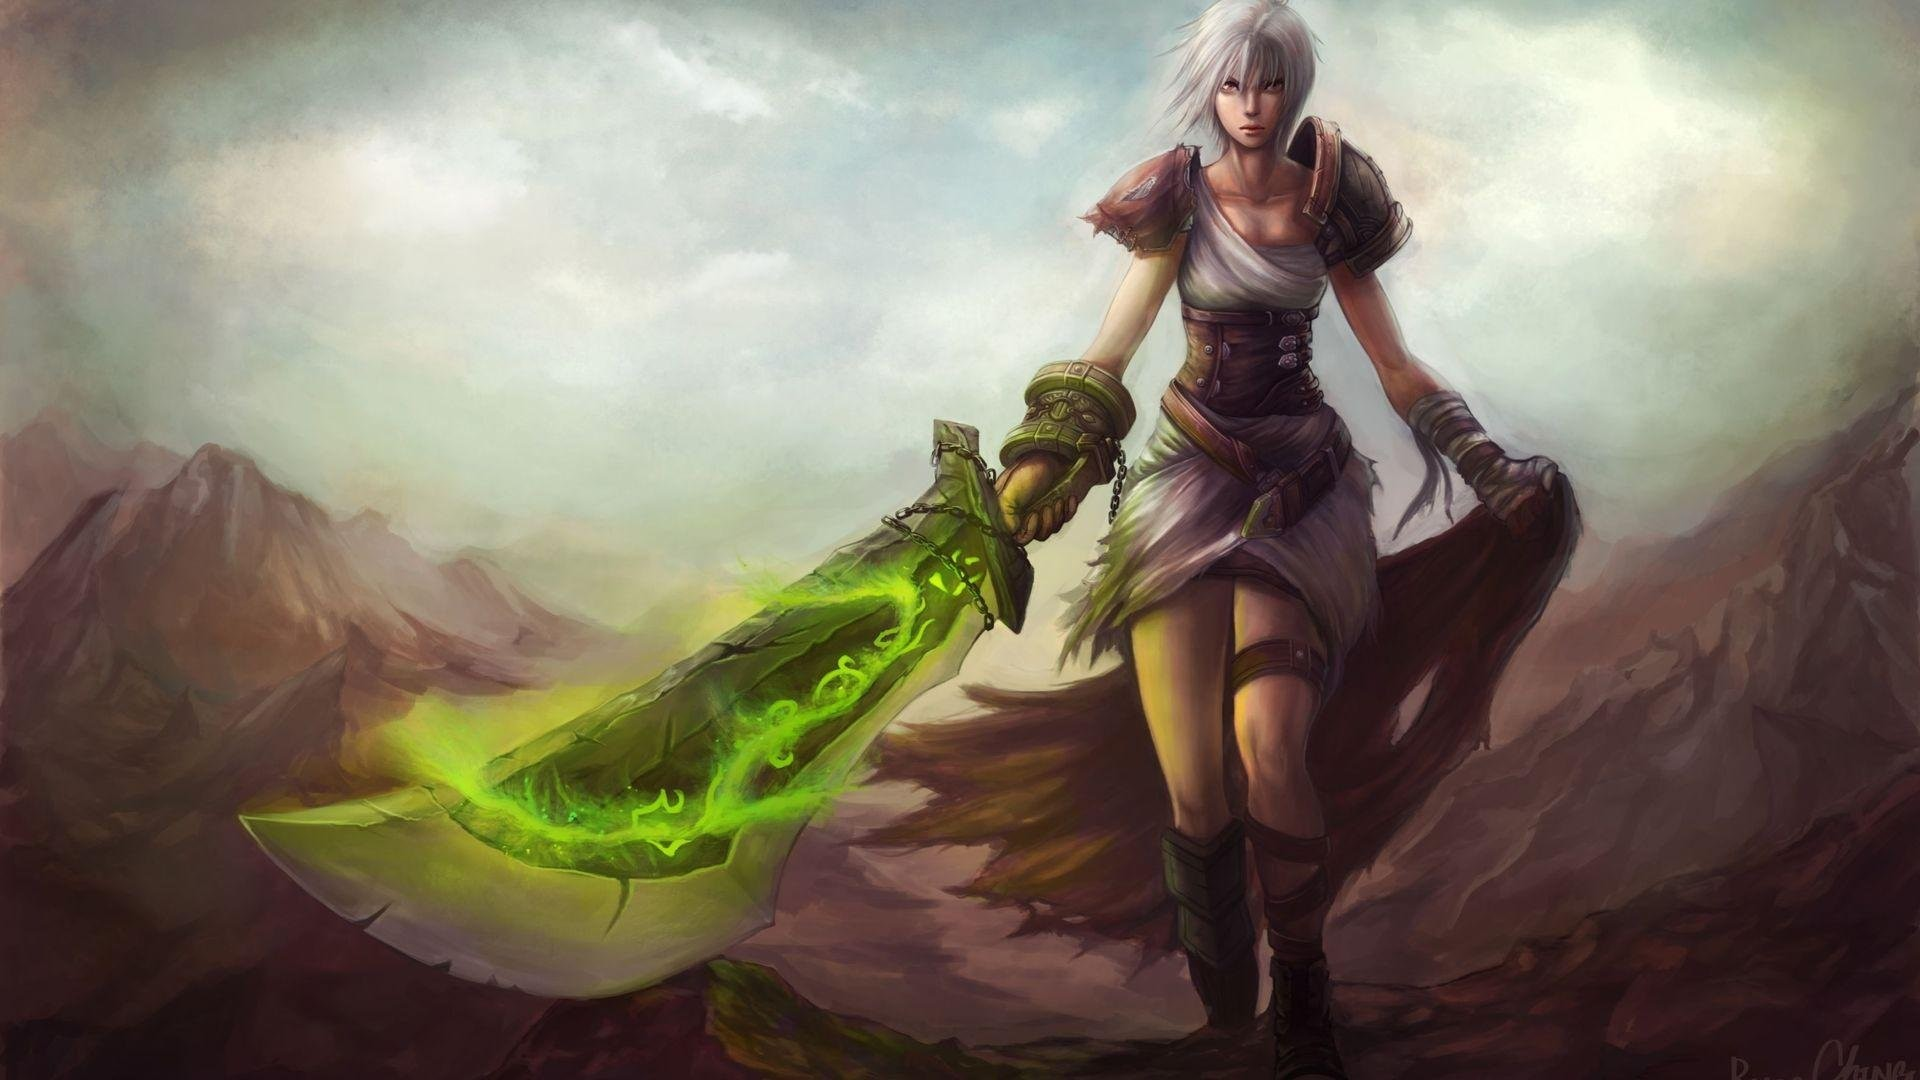 1920x1080 League Of Legends Riven 512806. SHARE. TAGS: Warrior Anime